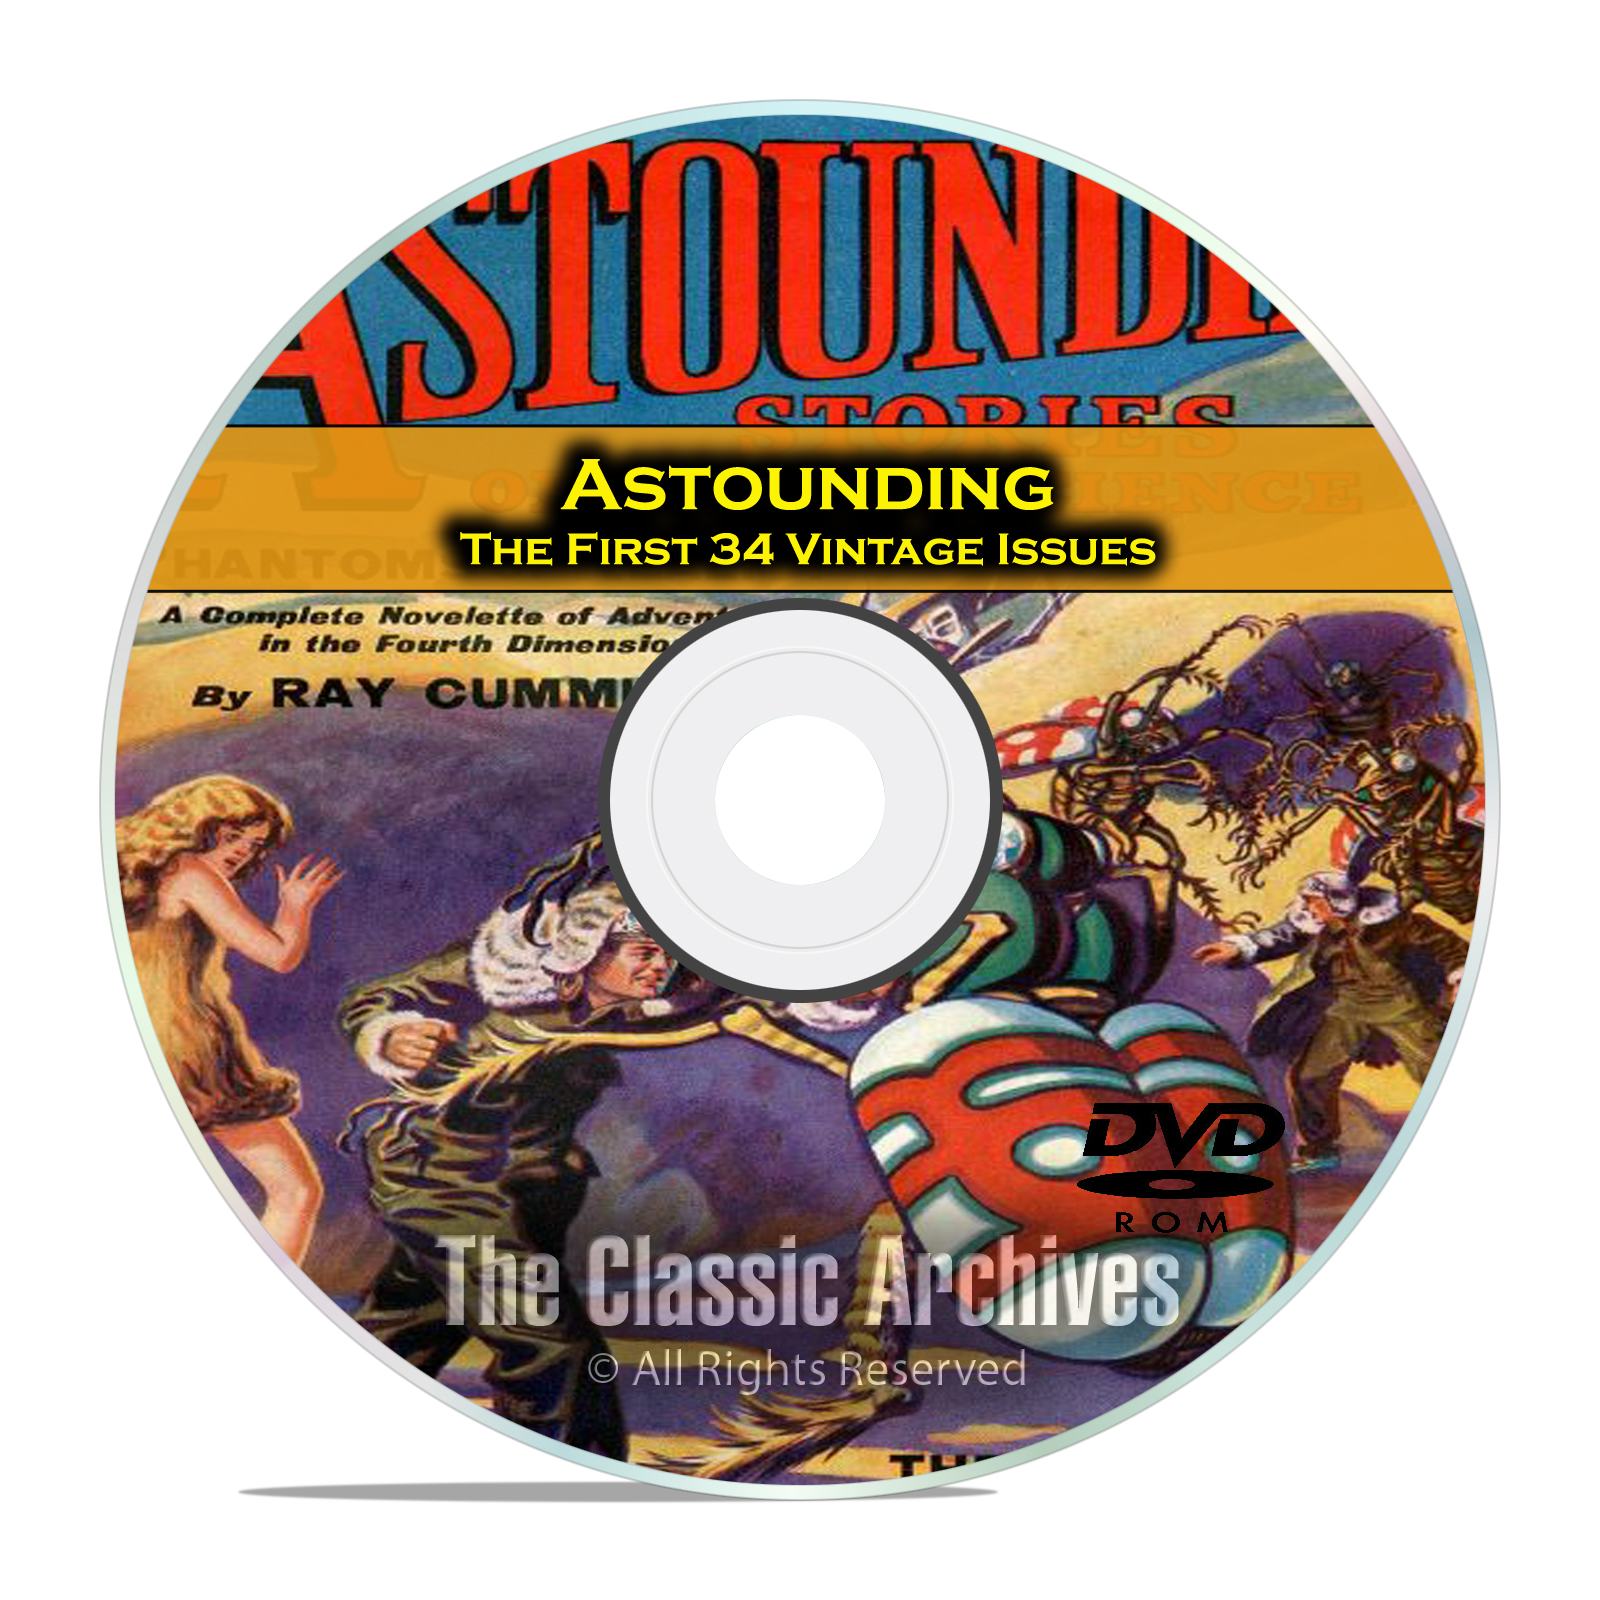 Astounding, First 34 Vintage Pulp Magazine, Golden Age Science Fiction DVD